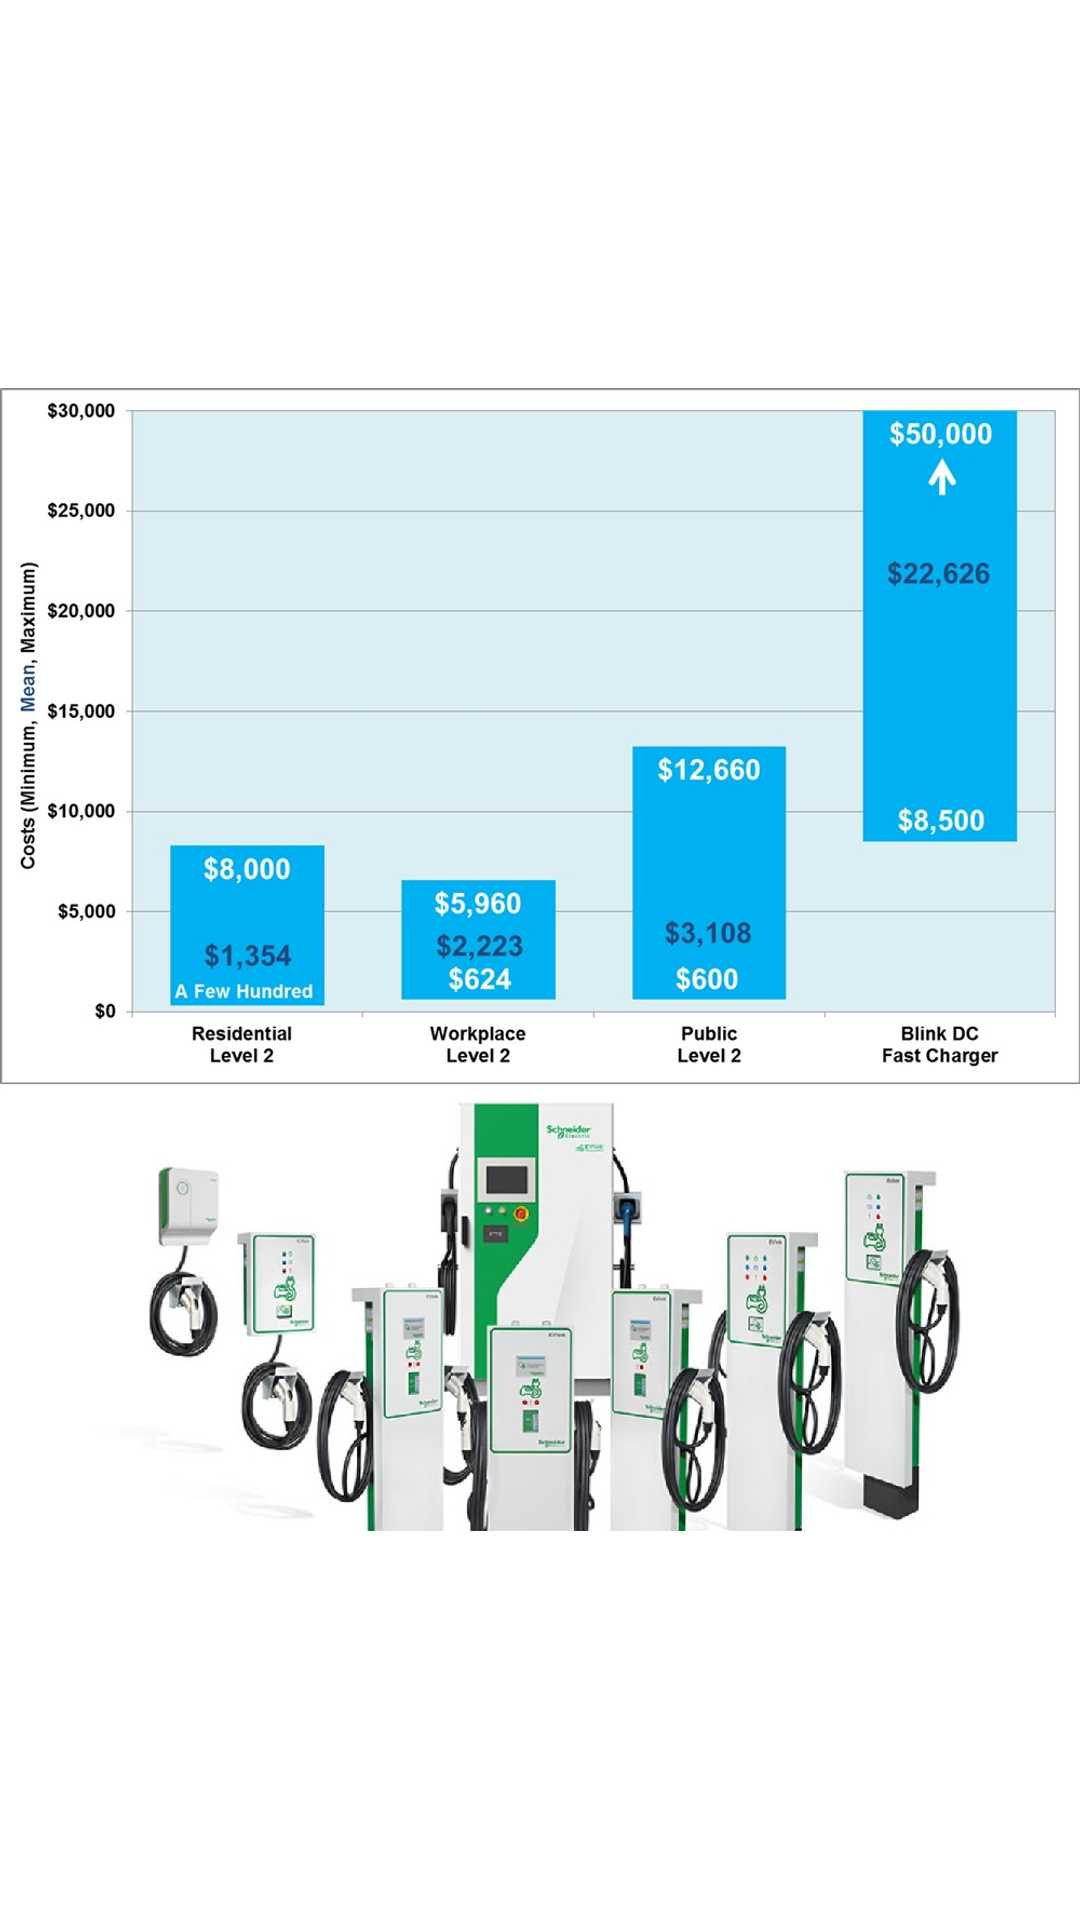 Installation Costs Of Electric Car Charging Stations By Type